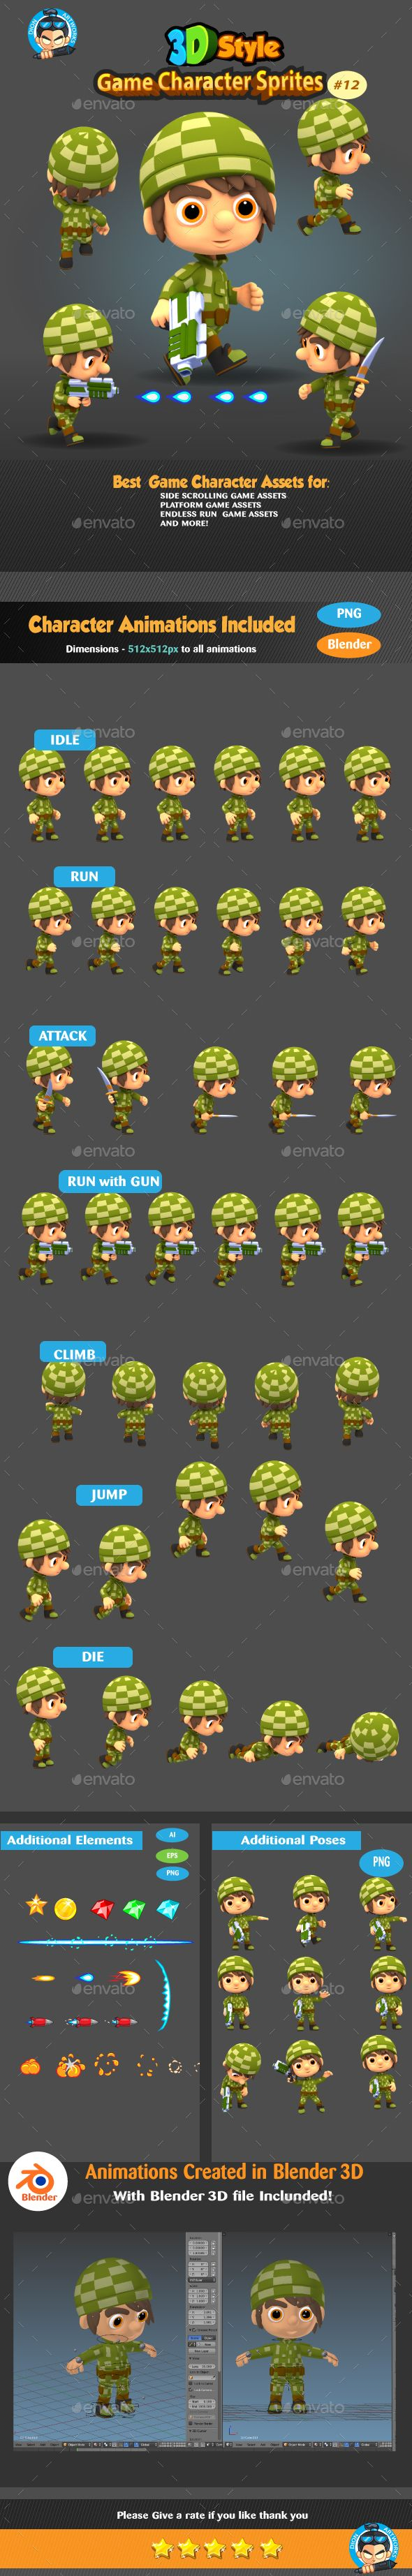 3D Rendered Game Character Sprites Design Template 12 - Sprites Game Assets Design Template Transparent PNG. Download here: https://graphicriver.net/item/3d-rendered-game-character-sprites-12/19332724?ref=yinkira